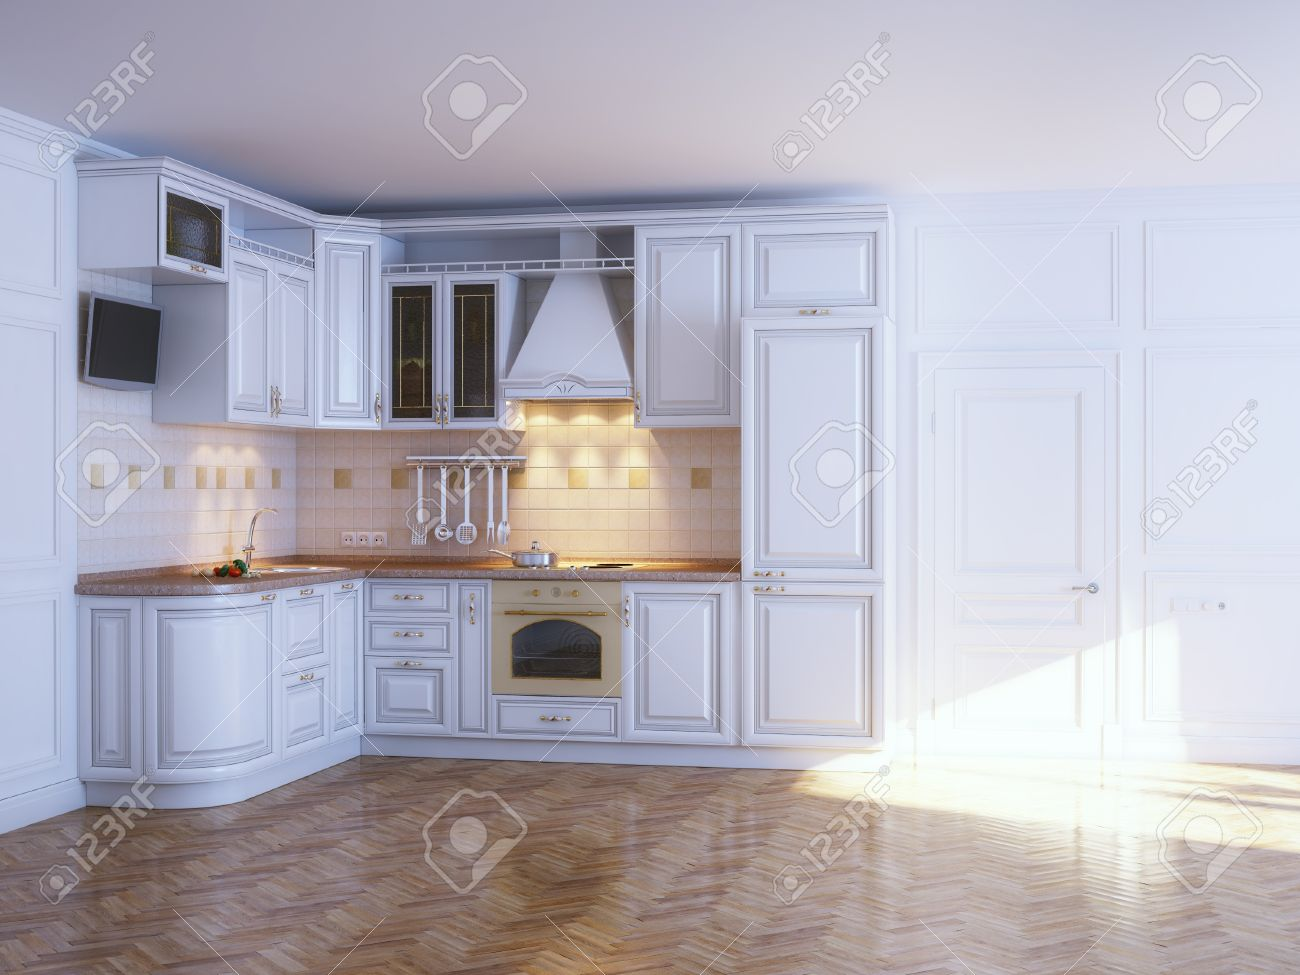 Classic kitchen cabinets in new white interior with parquet - 16572960